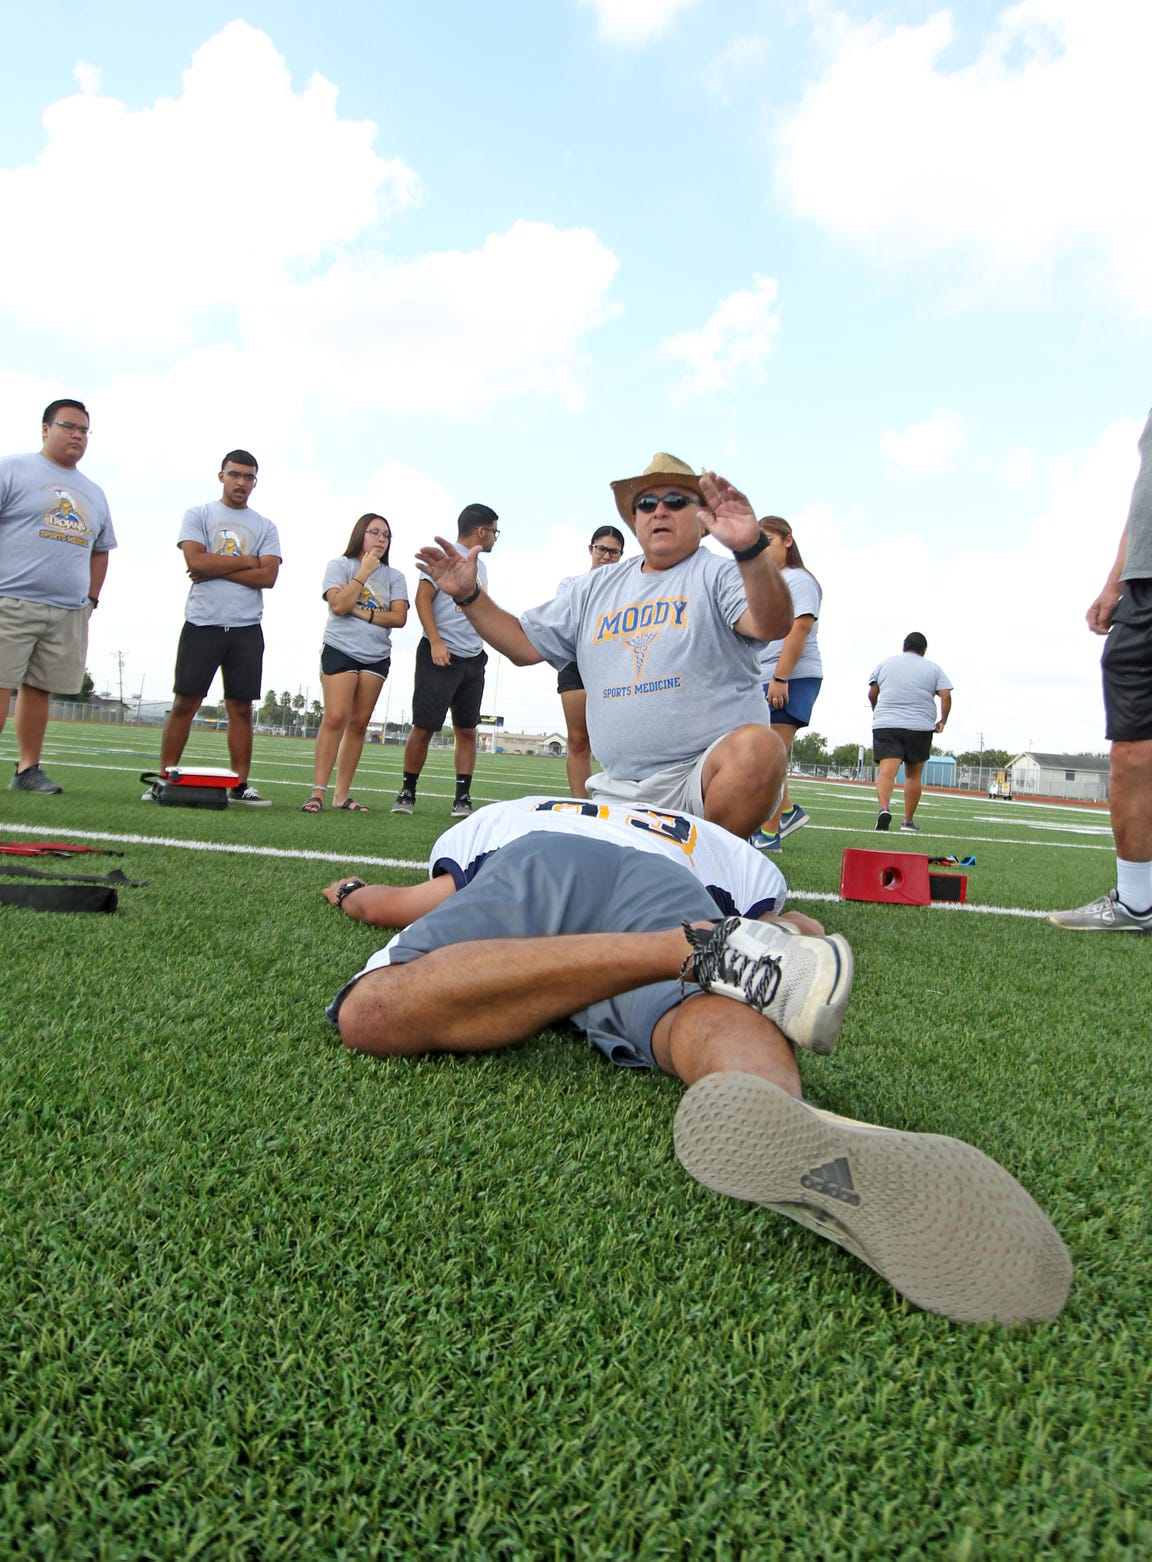 Moody Athletic Trainer Robert Gonzalez said much has changed since he took the job 29 years ago.